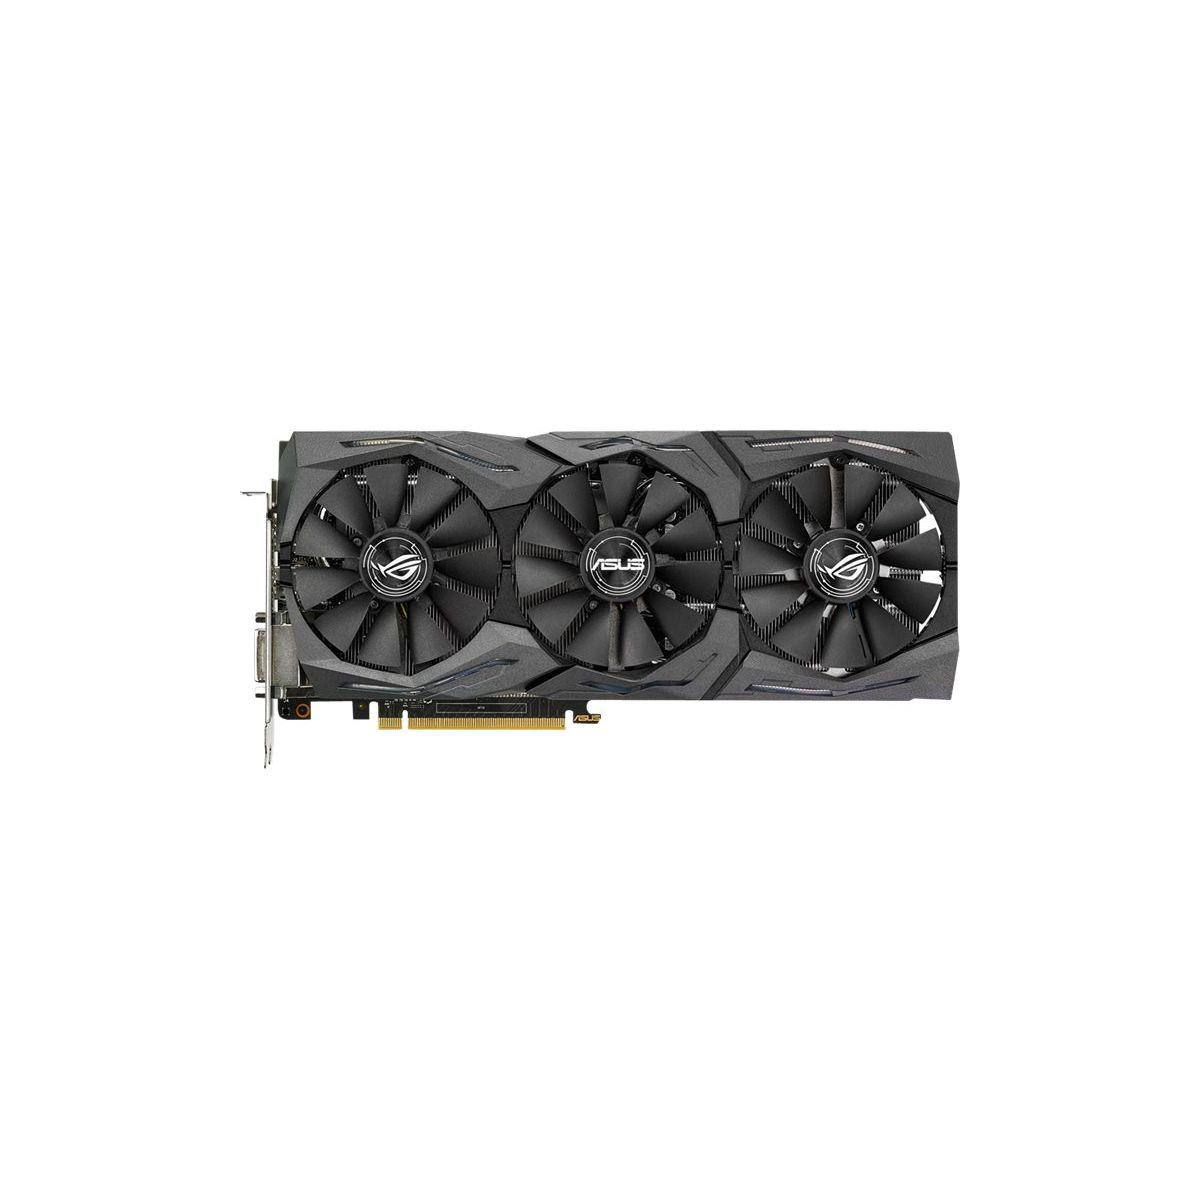 Carte graphique asus strix-gtx1080-a8g-gaming (photo)